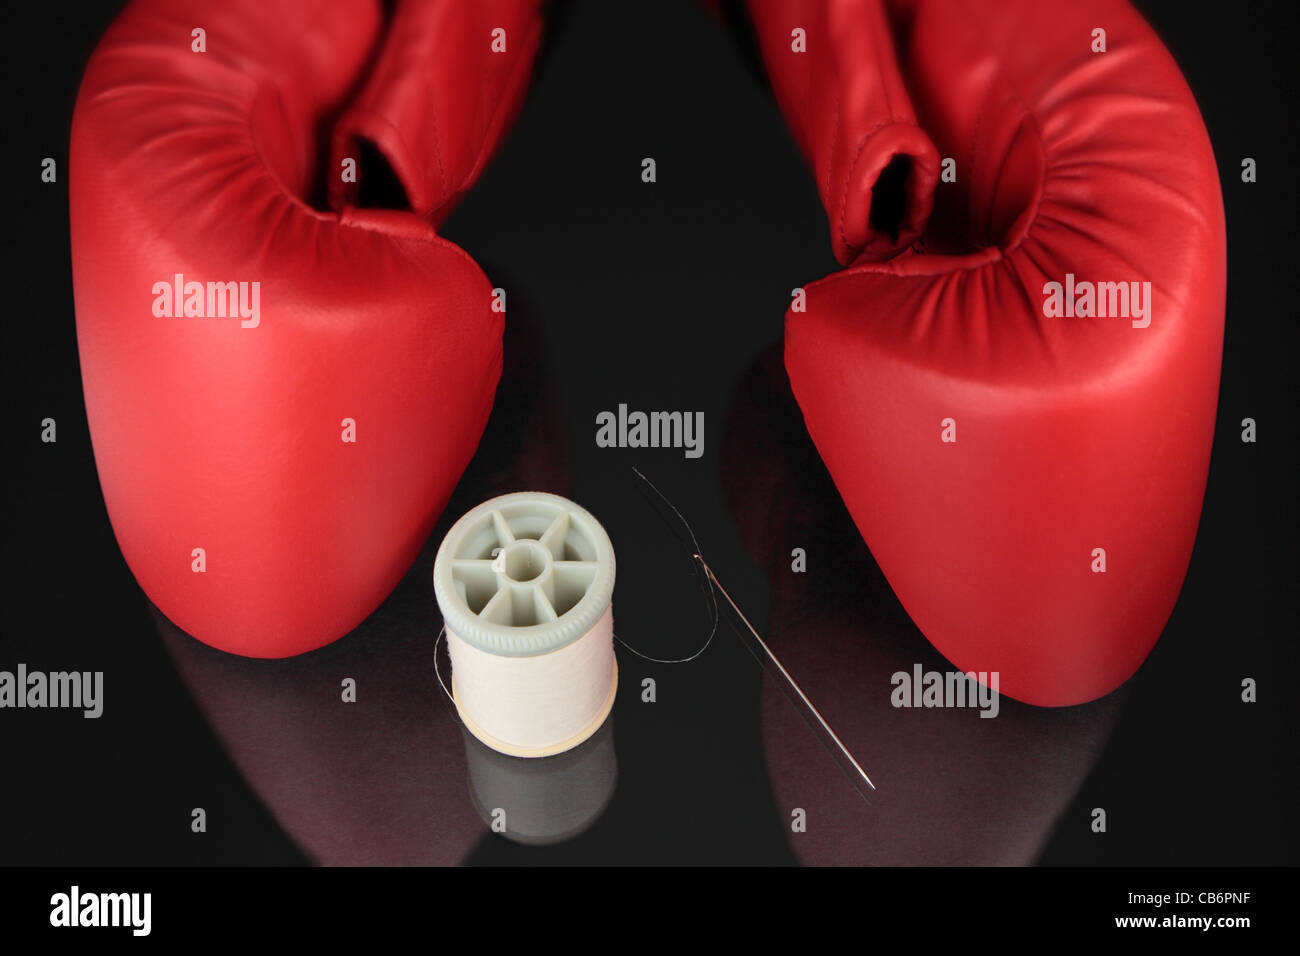 a spool of thread, sewing needle and boxing gloves on black reflective surface - Stock Image